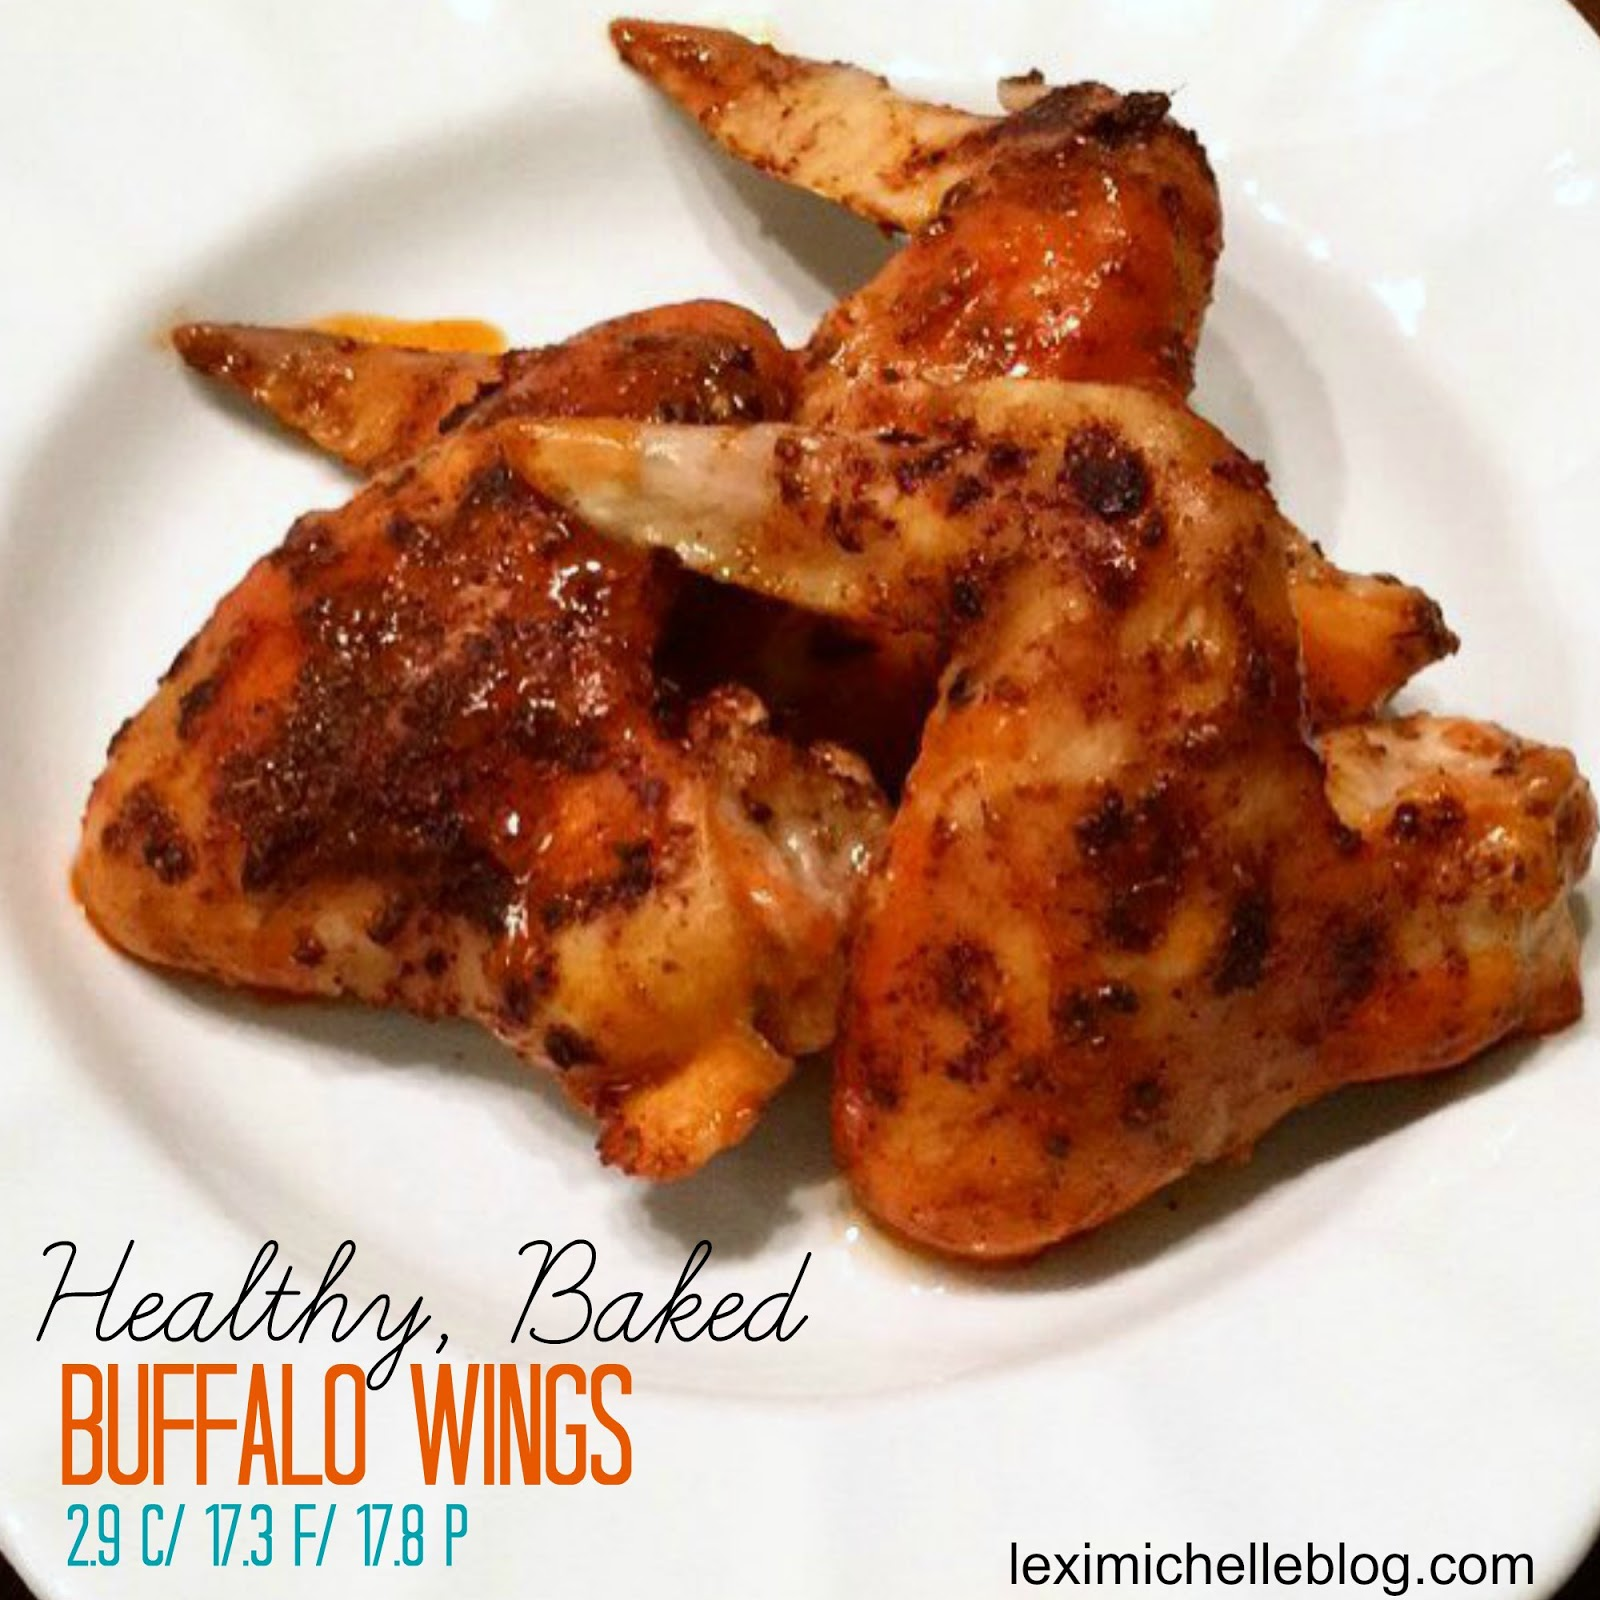 Super Bowl Menu Must-Haves: 5 Healthy Chicken Wing Recipes